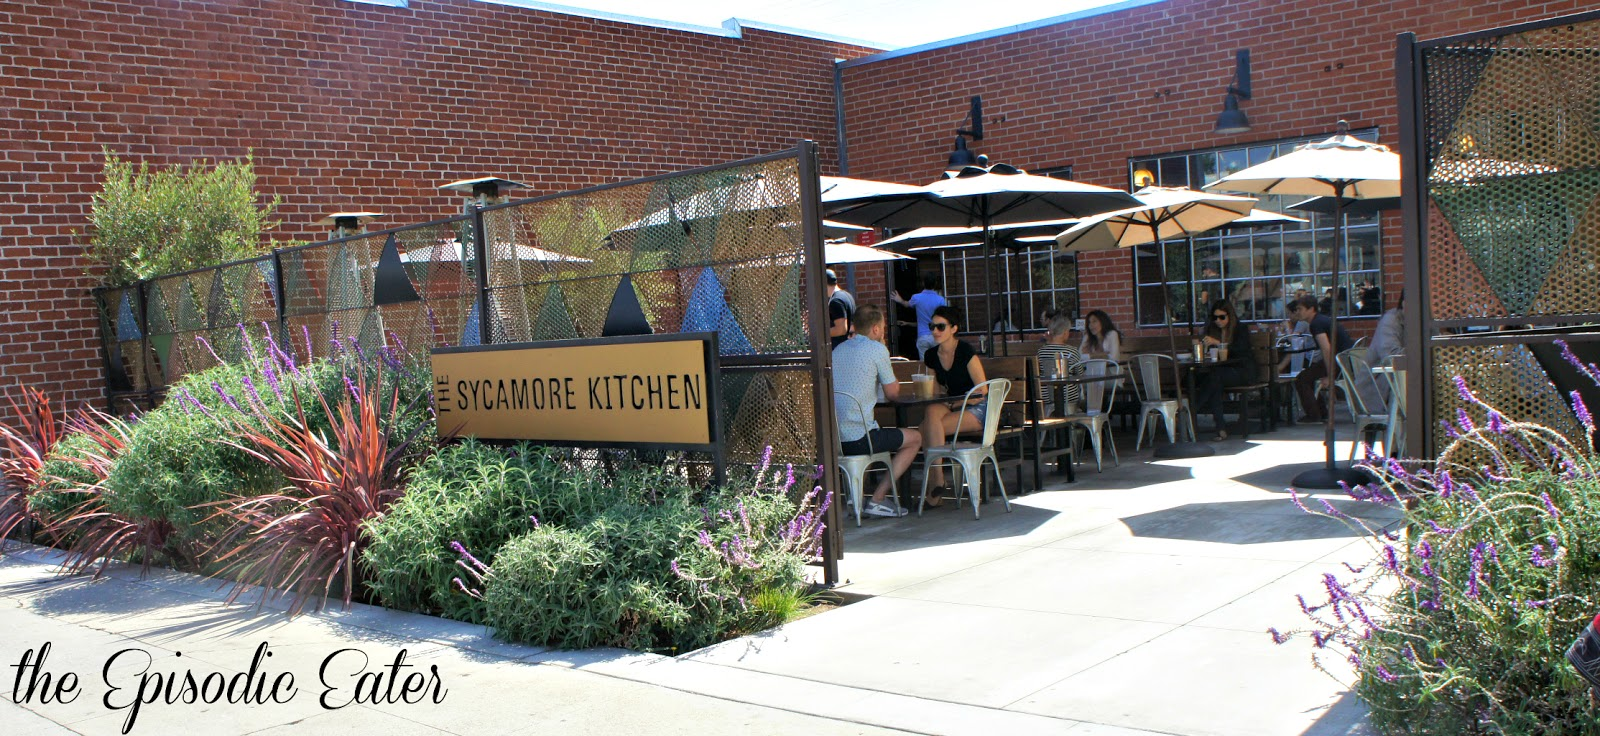 The Sycamore Kitchen (Los Angeles, CA) • The Episodic Eater